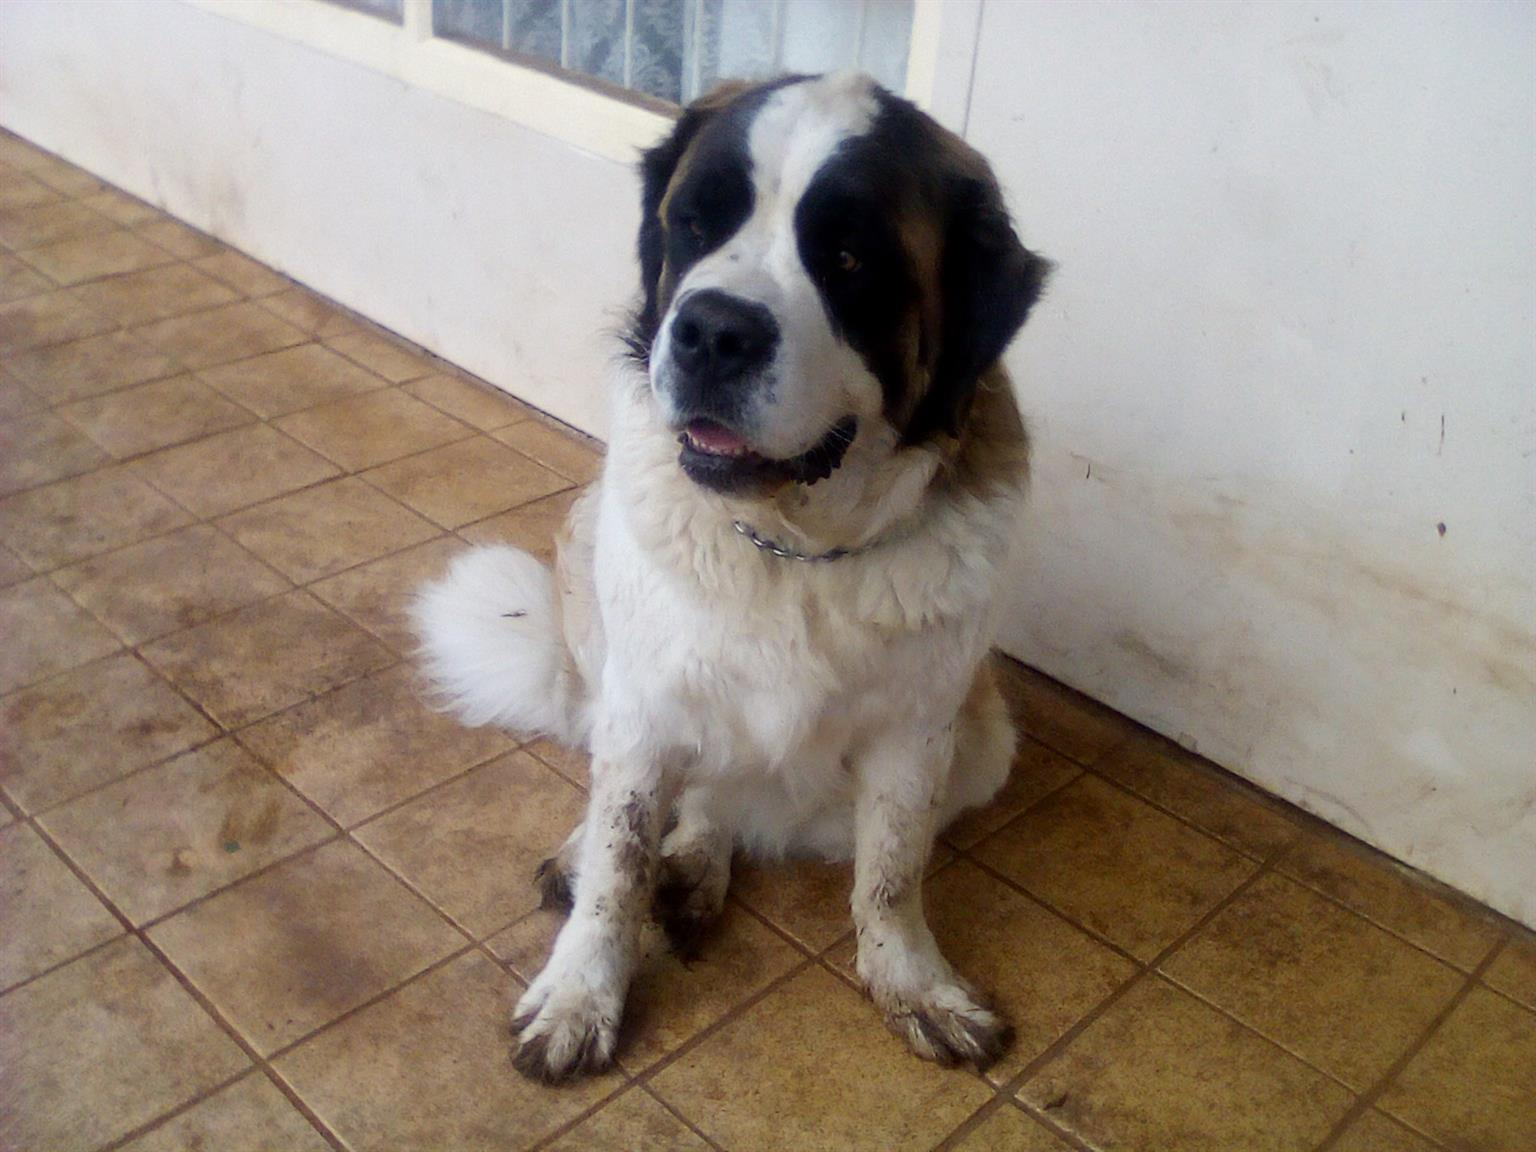 KUSA registered St. Bernard female